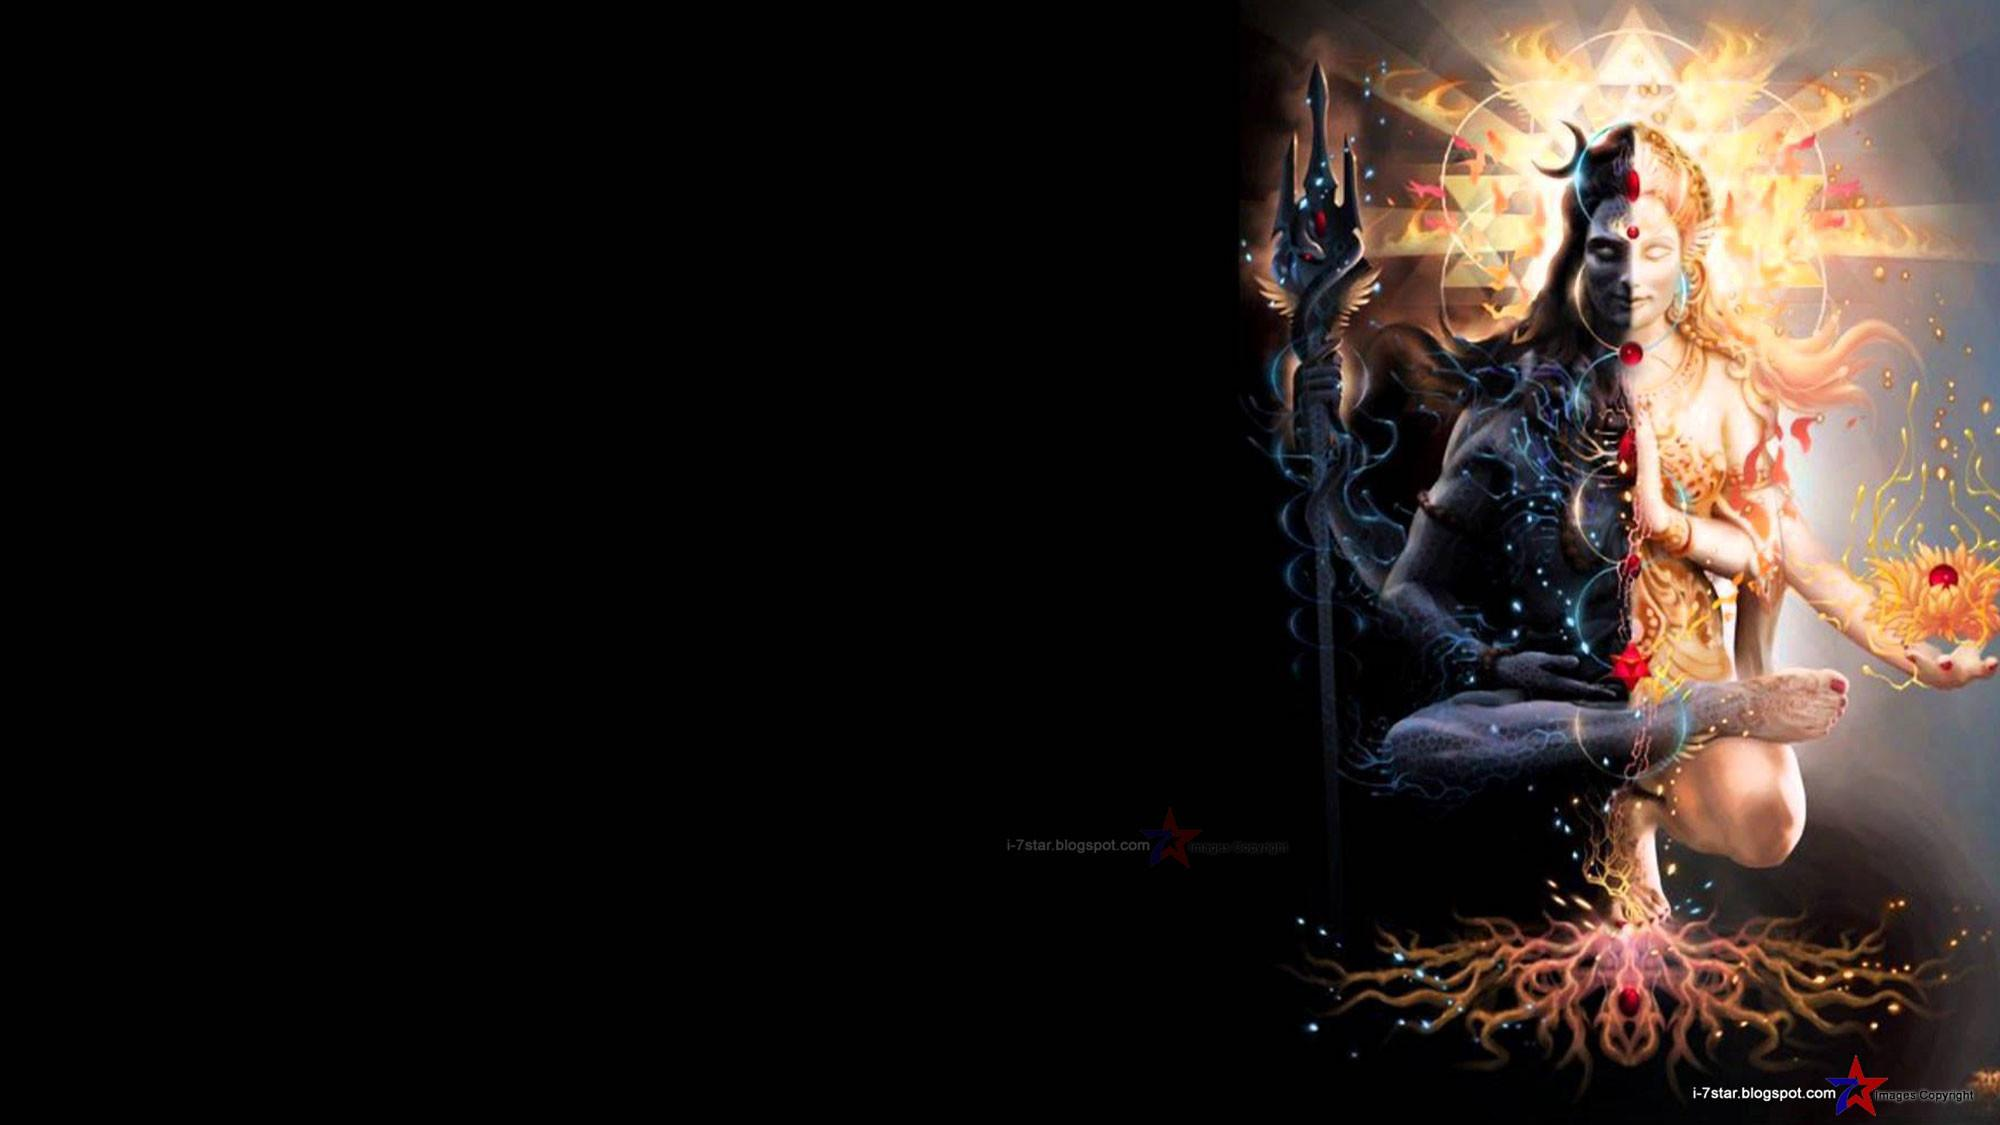 Hd Wallpapers For Pc Shiva